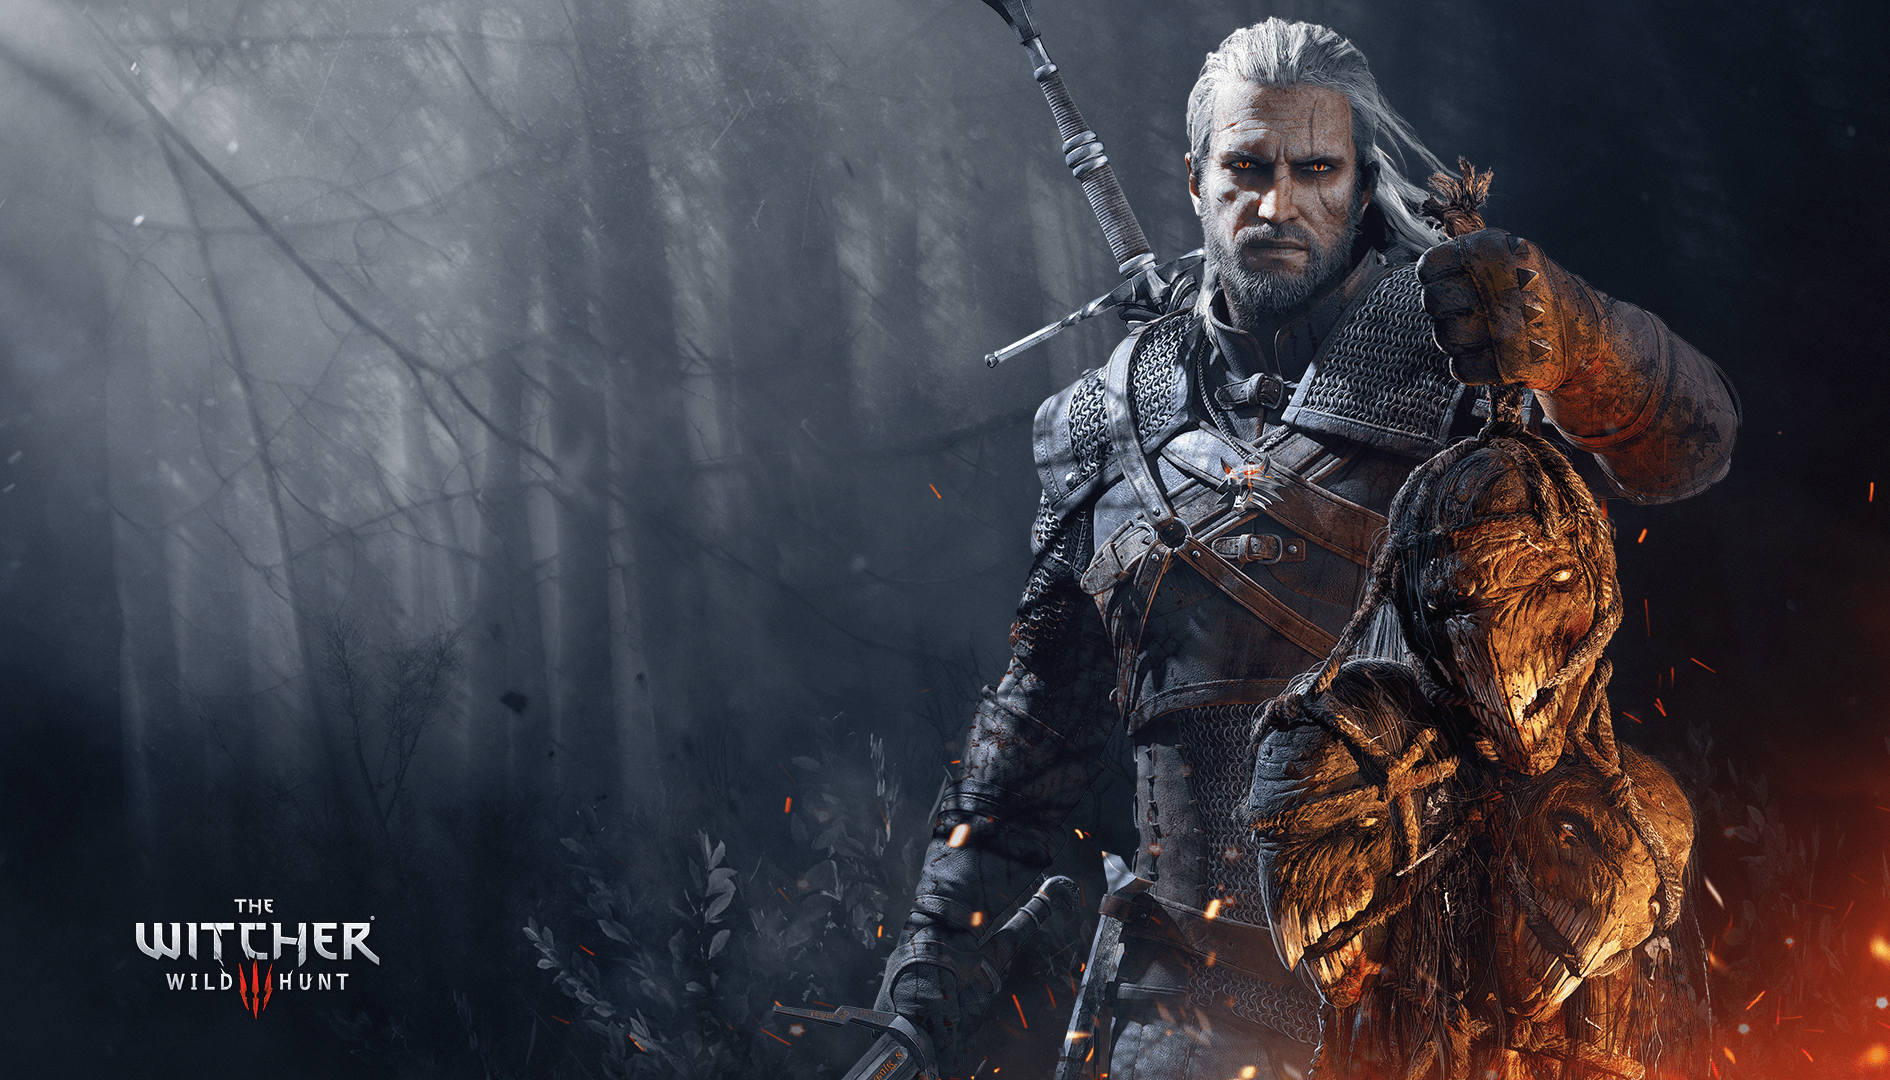 The Witcher 3: la grossa patch per Nintendo Switch è stata cancellata?